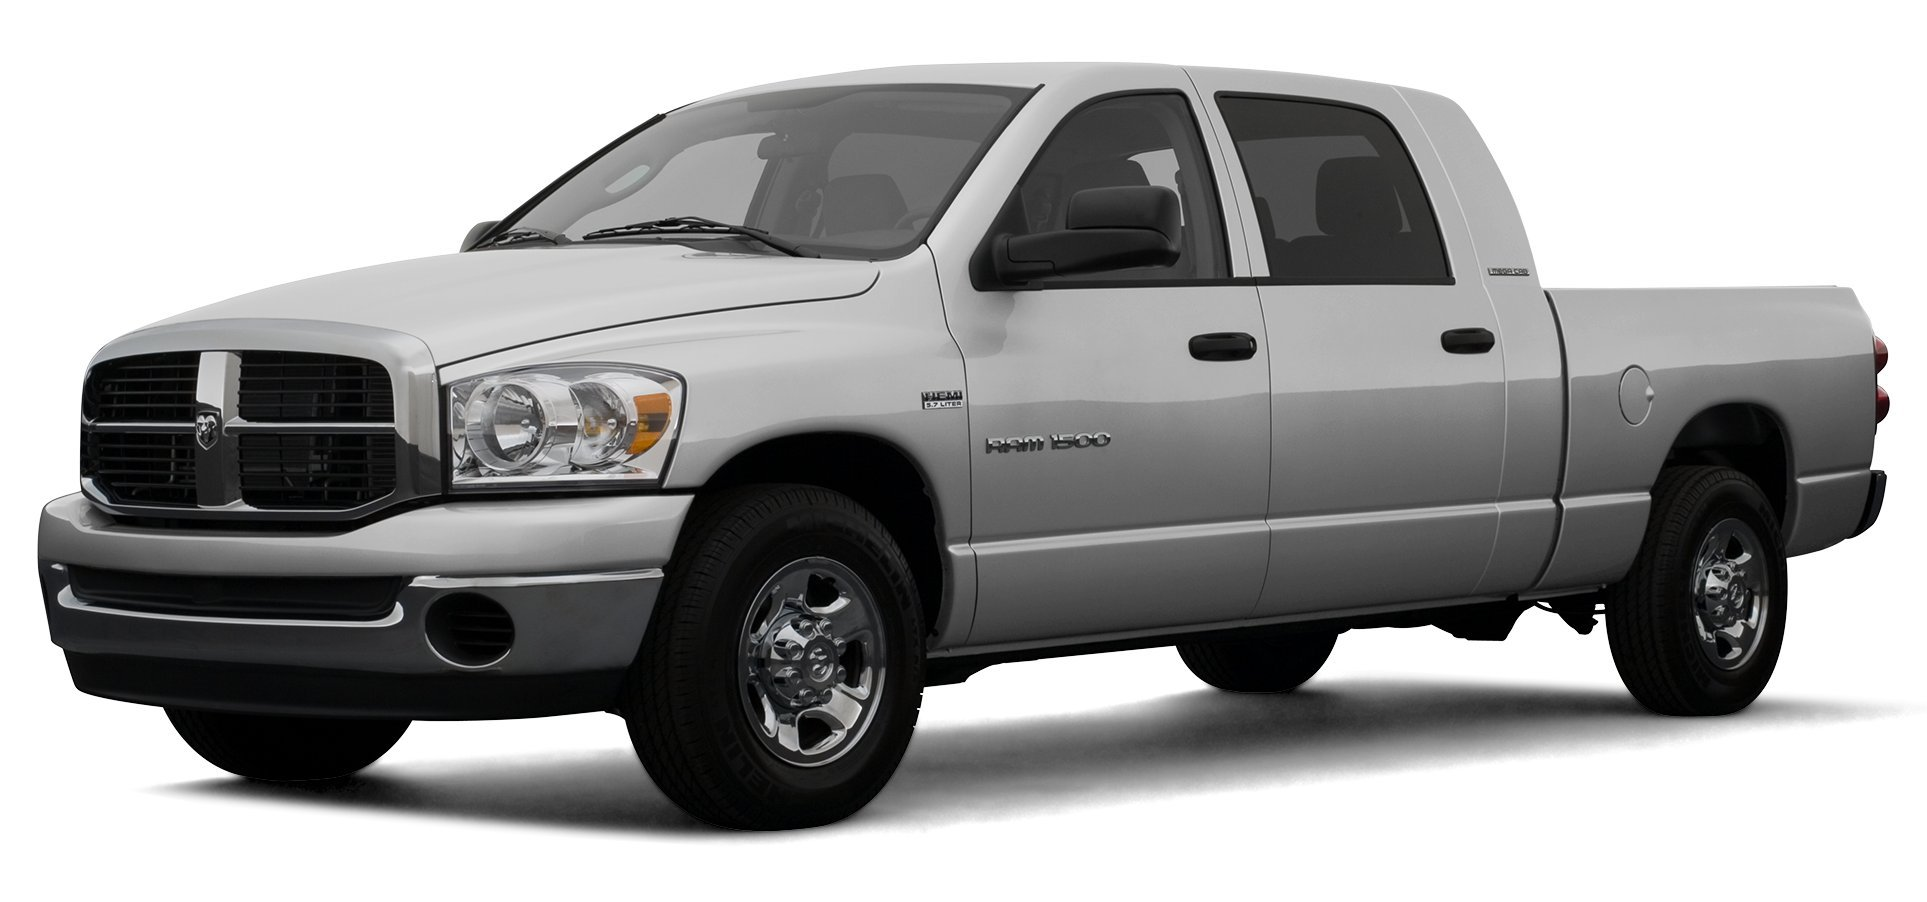 2007 dodge ram 2500 mega cab owners manual